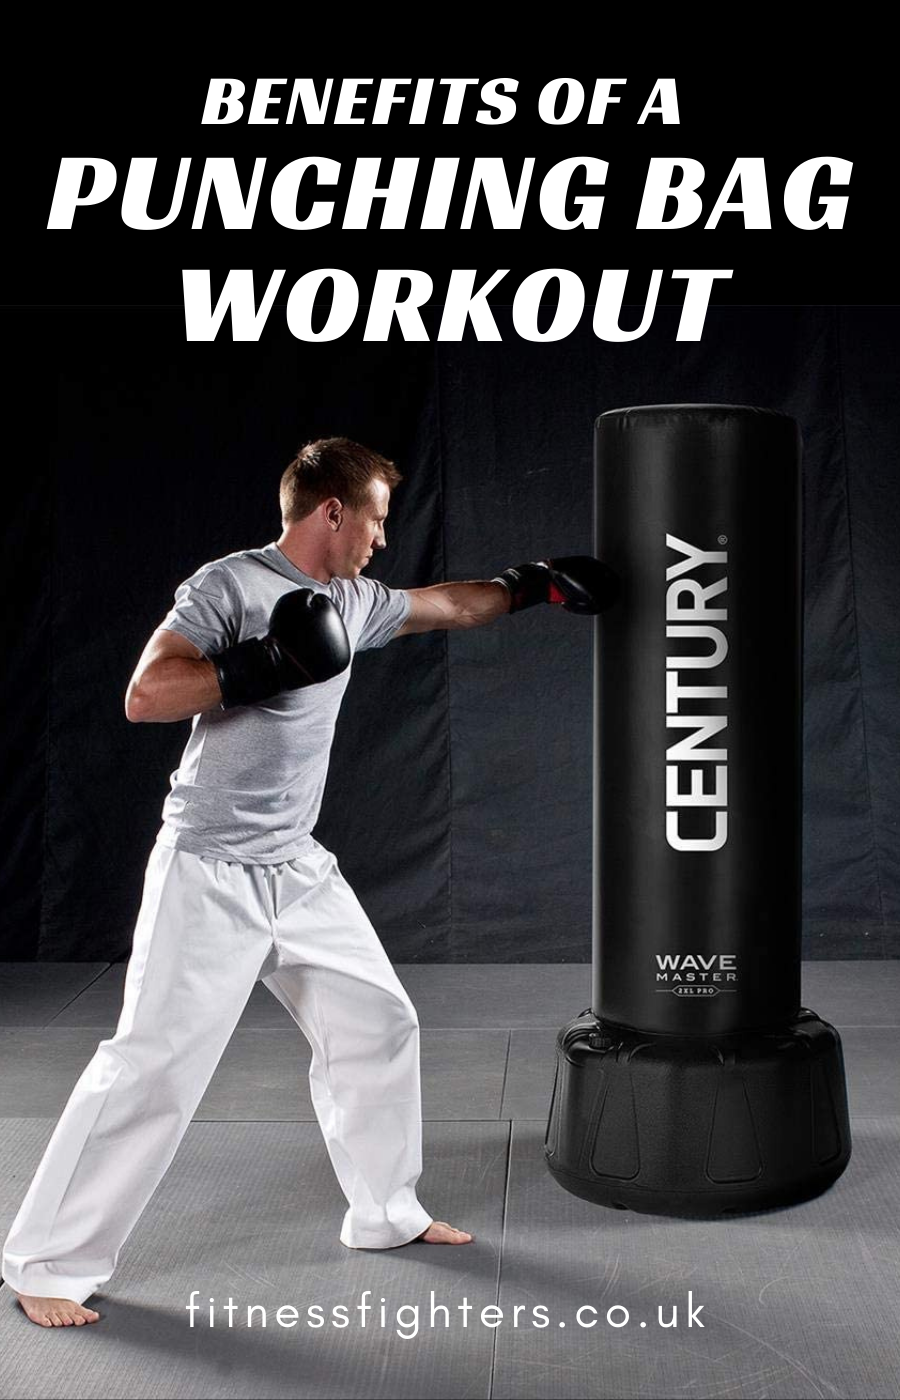 The Benefits Of A Punching Bag Workout Free Standing Punching Bag Workout Punching Bag Wavemaster Workout